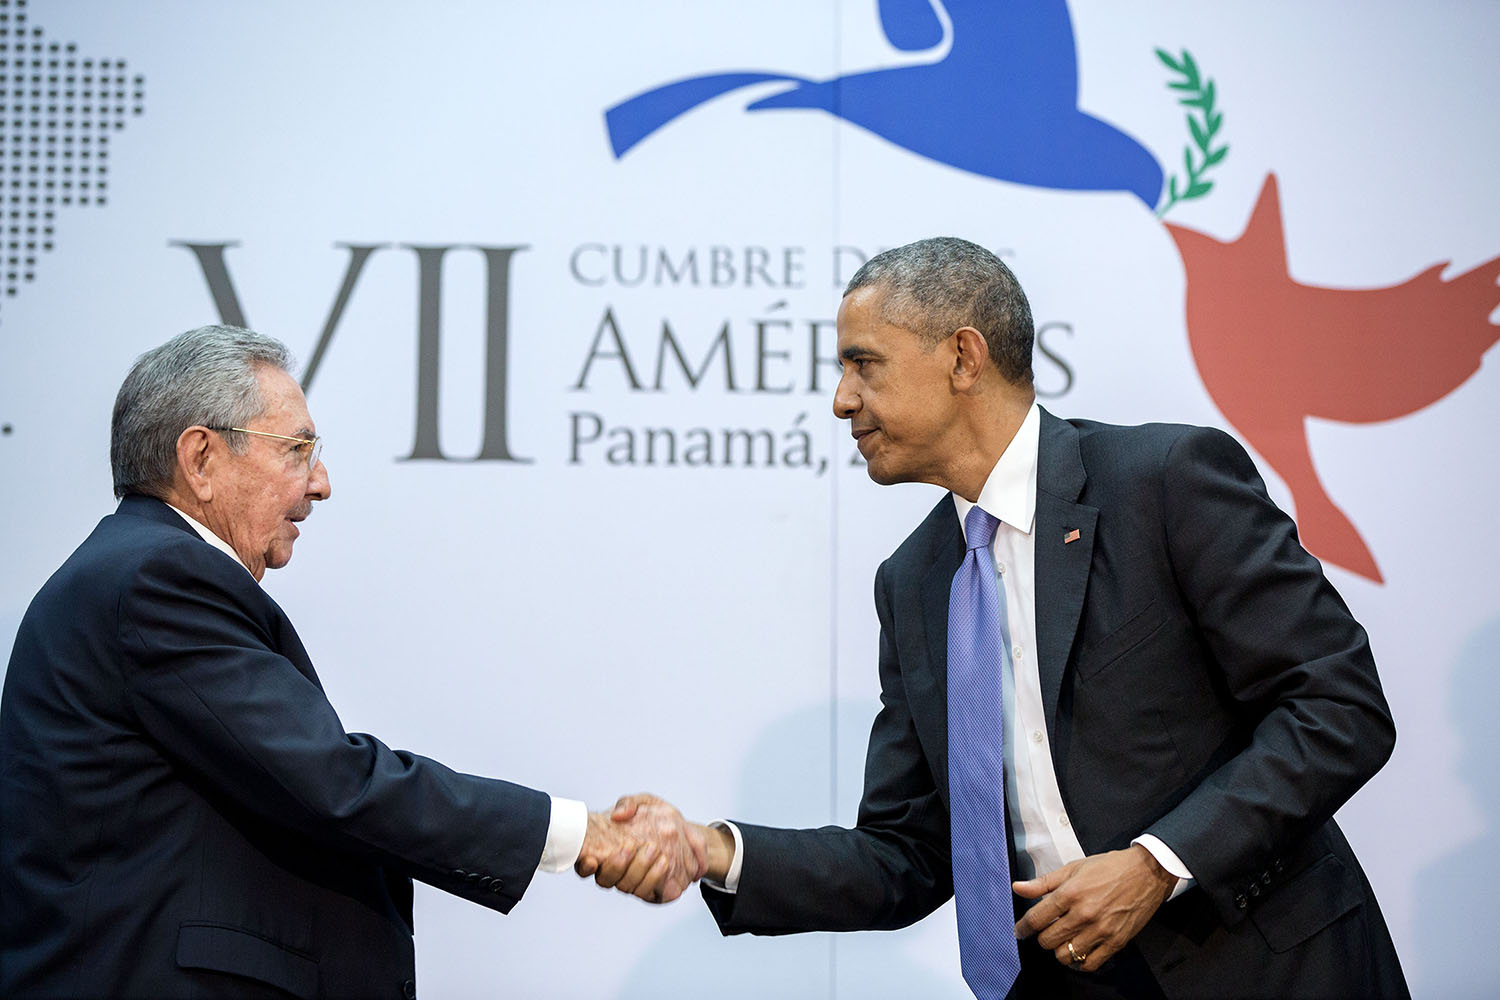 Cuba rejects new US policy, calls it 'archaic'